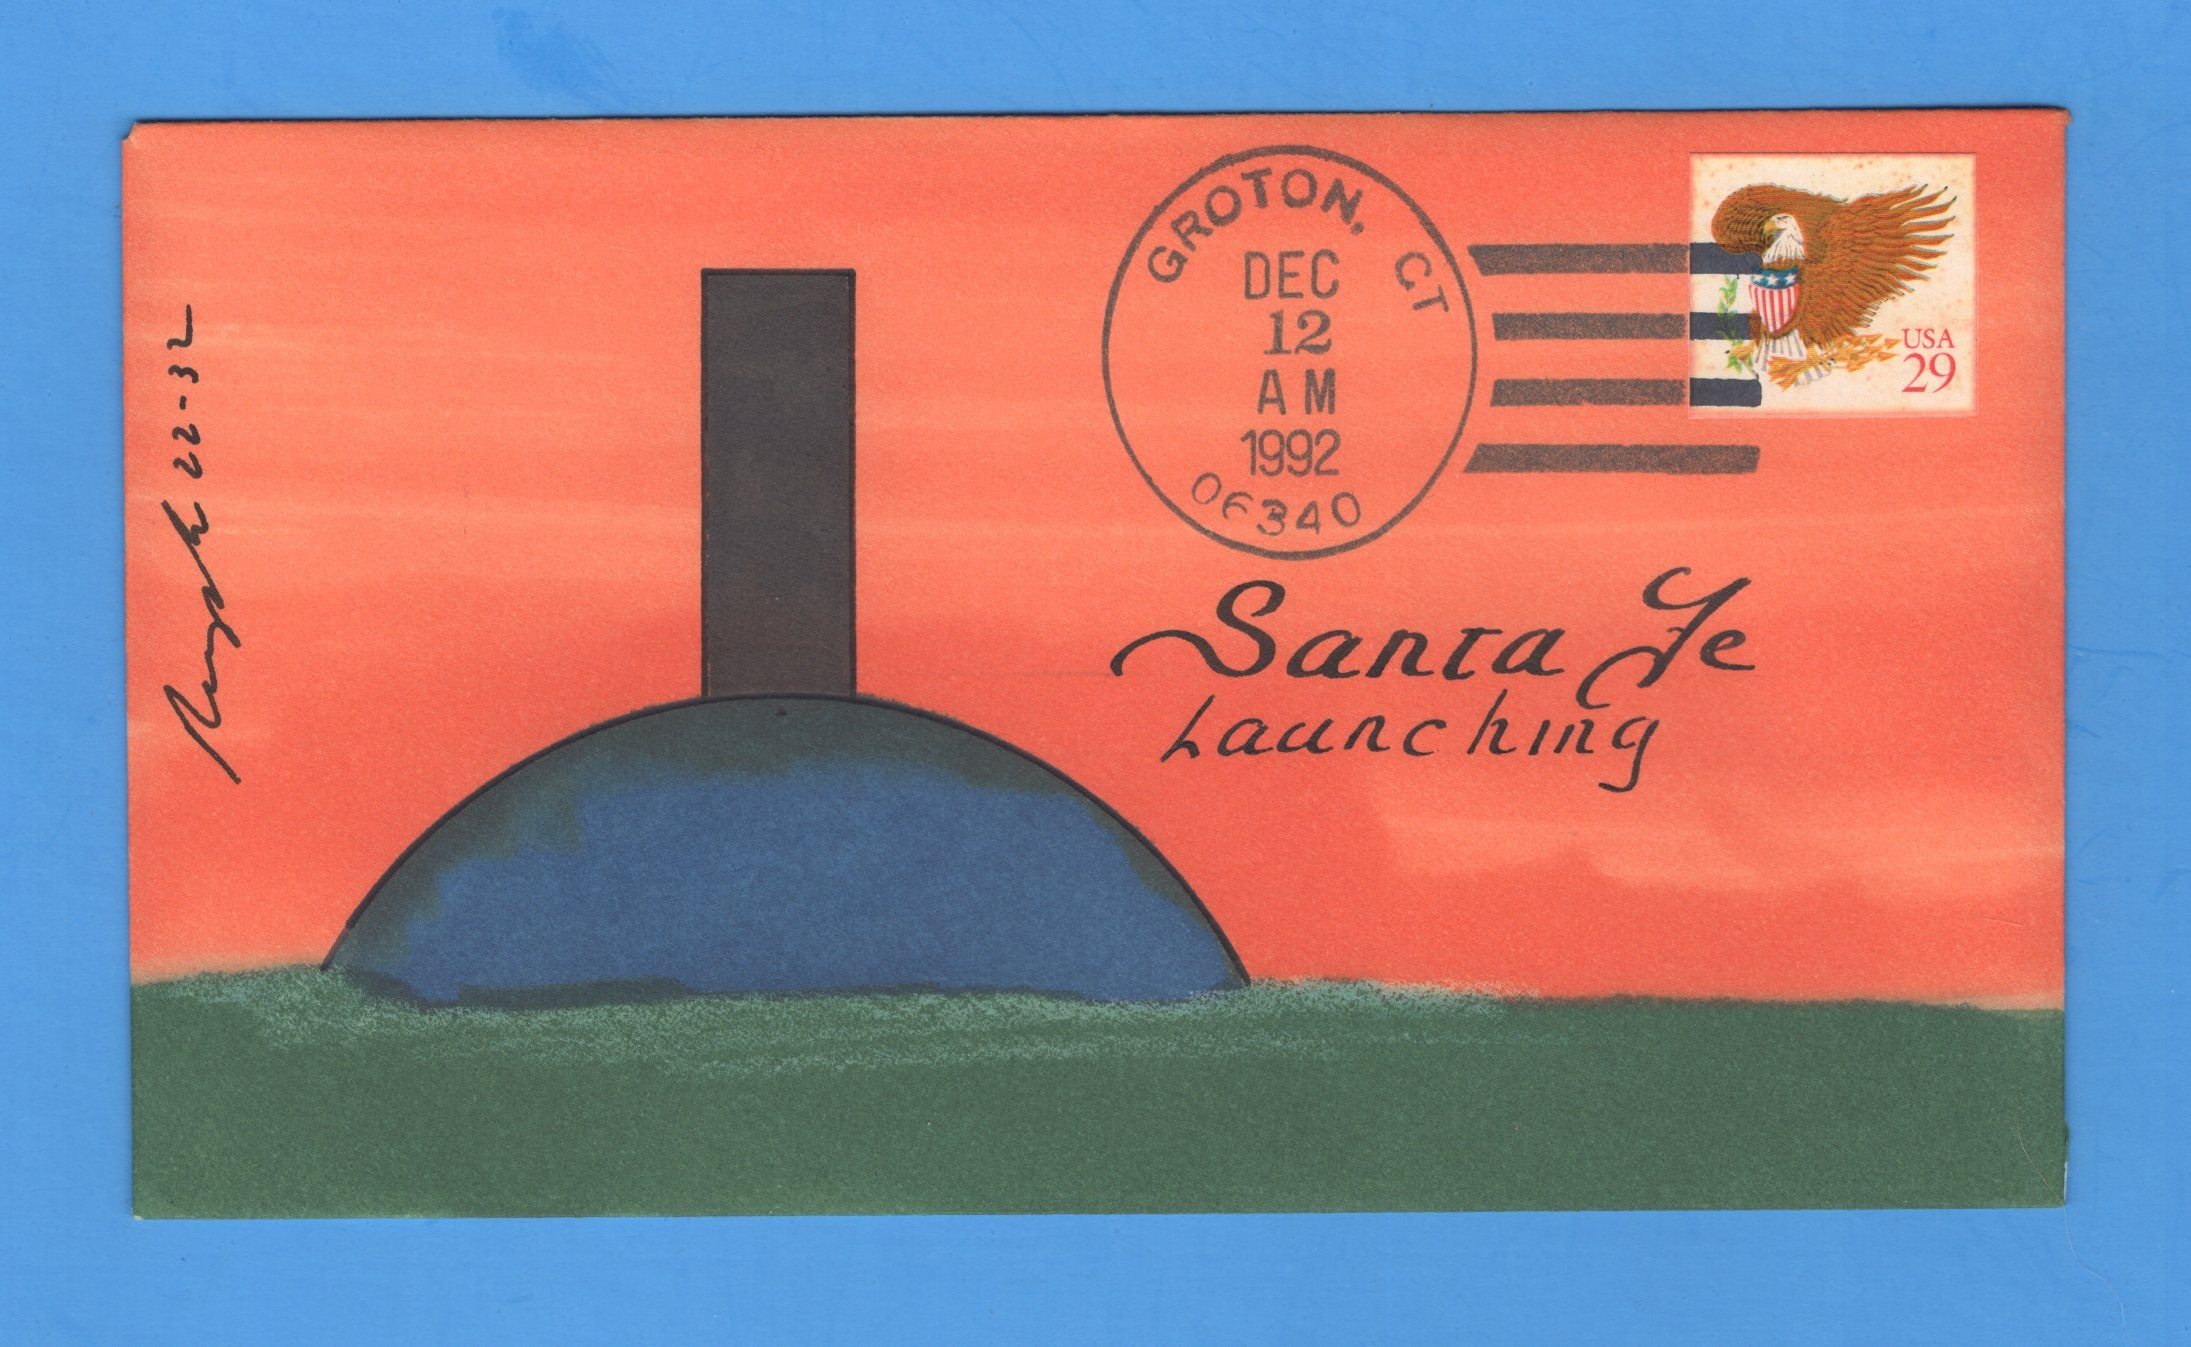 USS Santa Fe SSN-763 Launched December 12, 1992 - Rogak Cachet